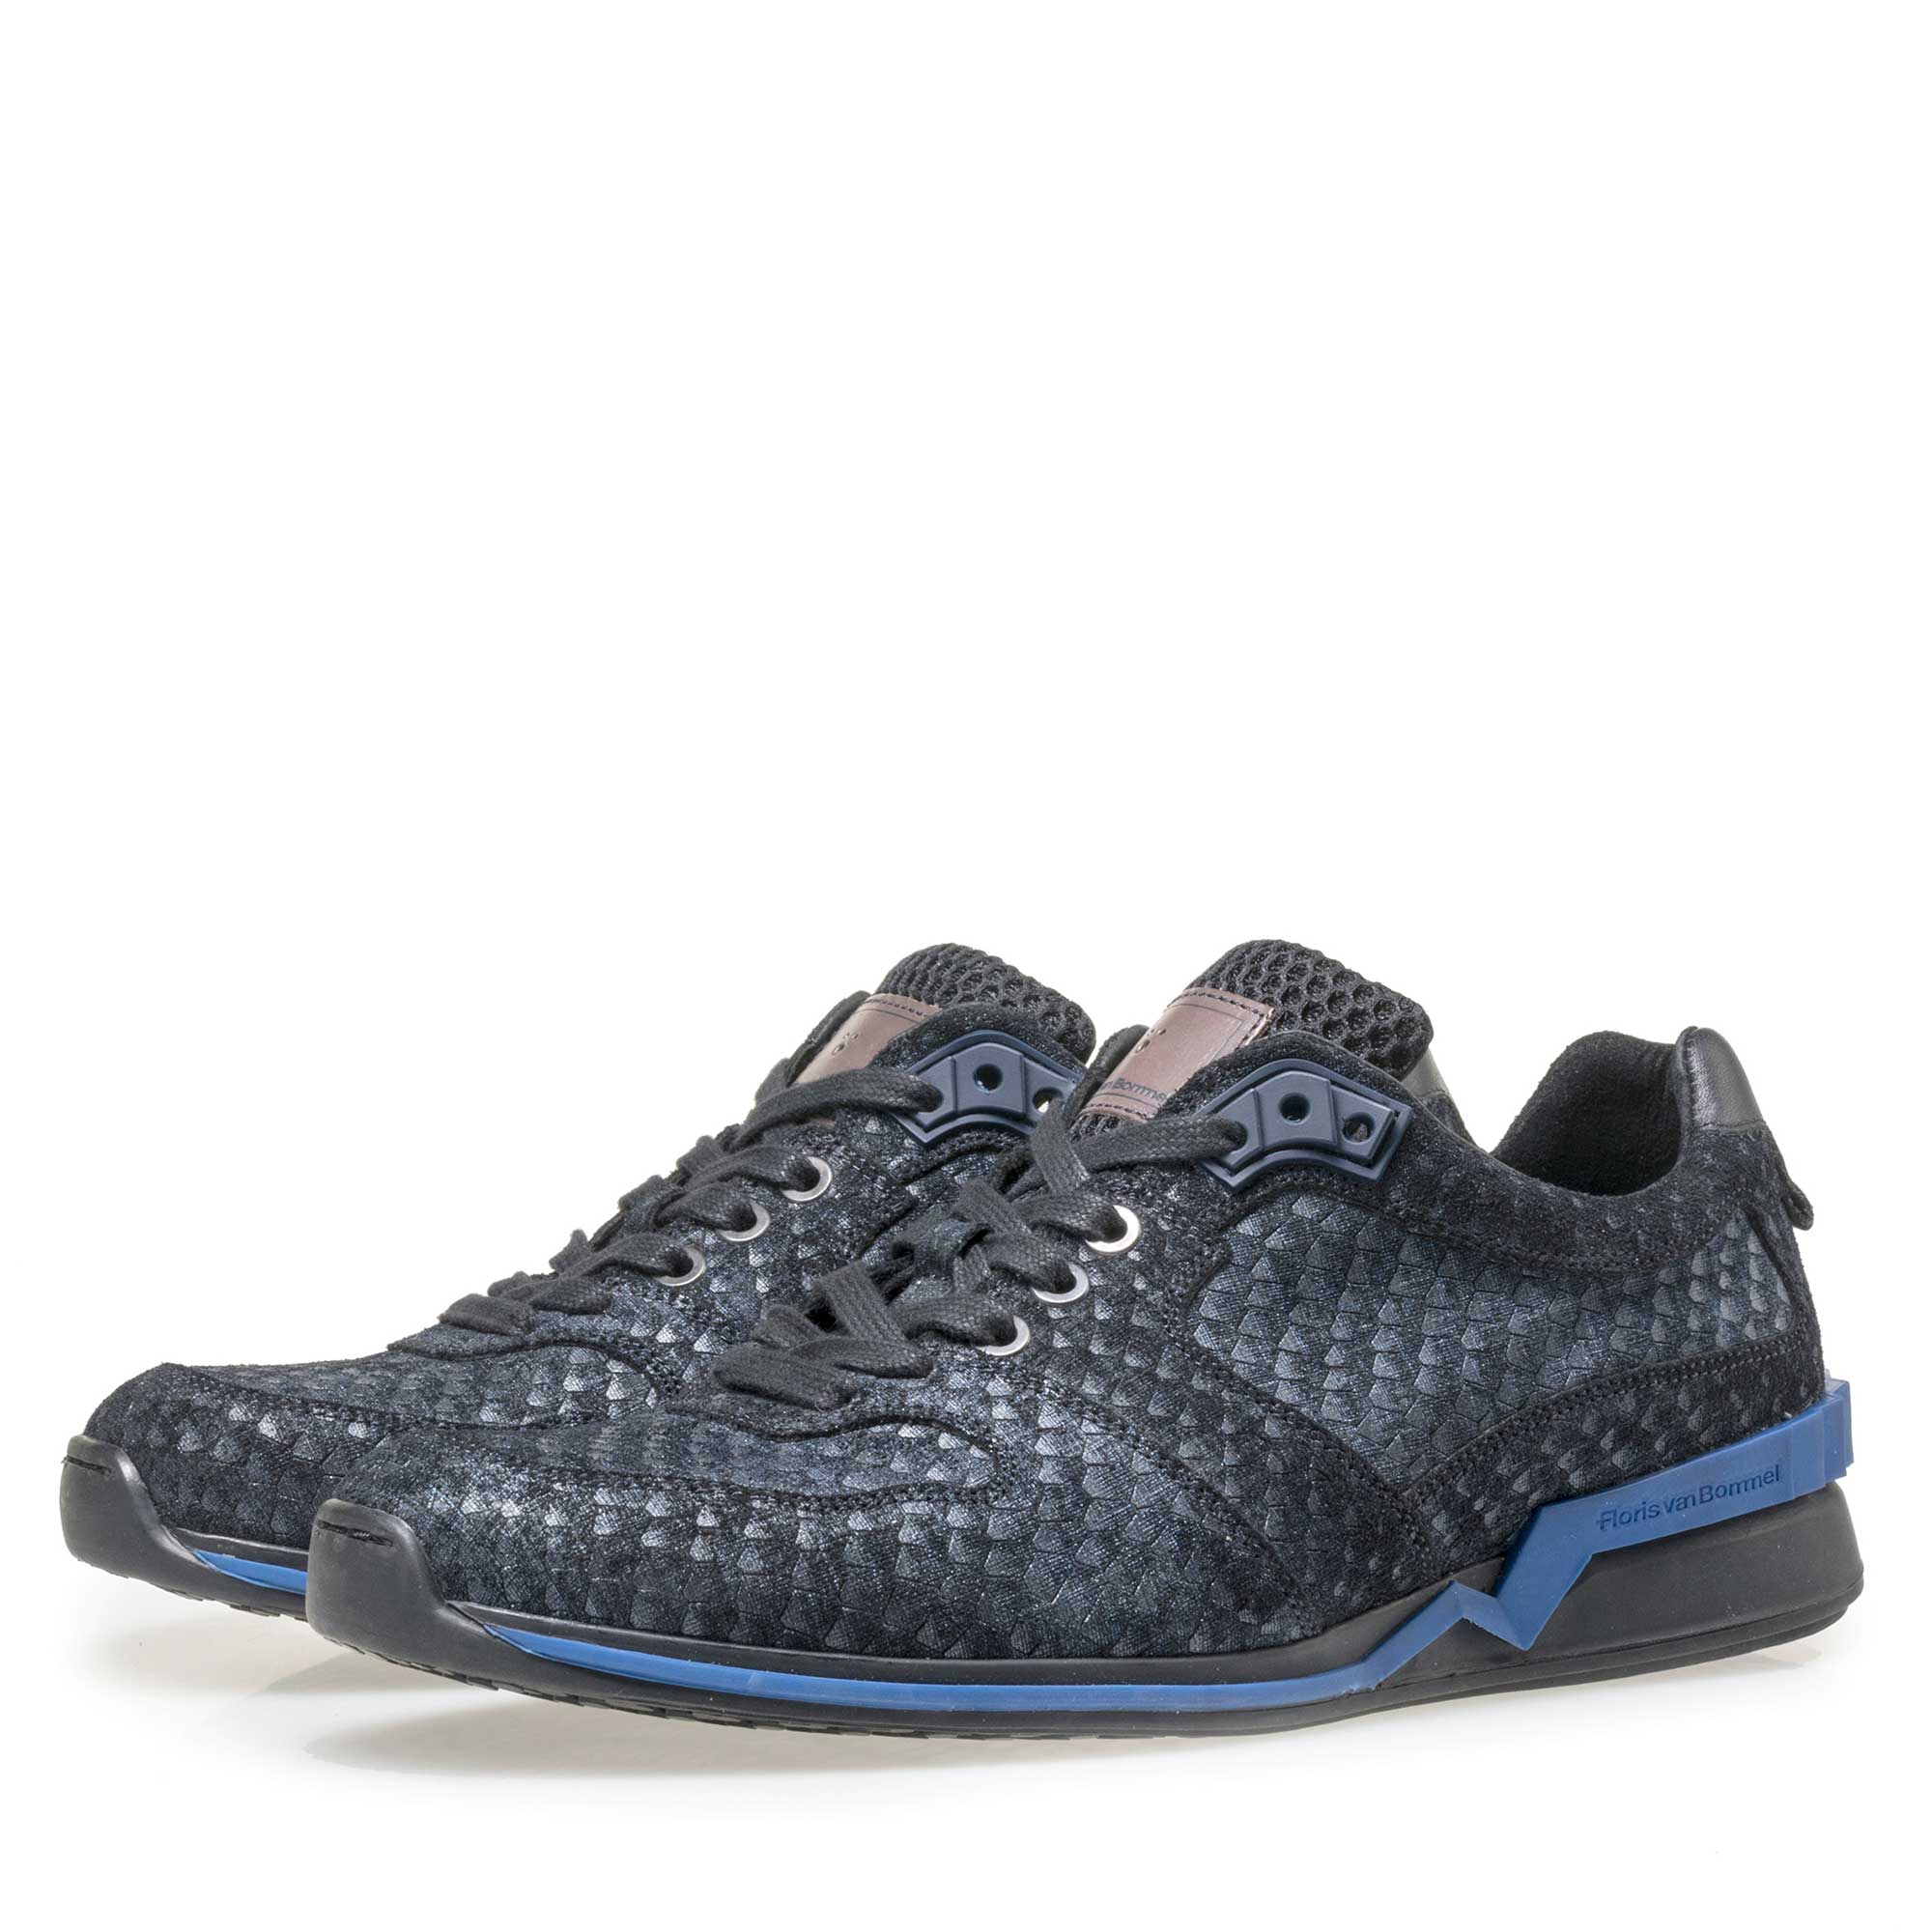 16176/04 - Floris van Bommel blue suede leather snake print sneaker